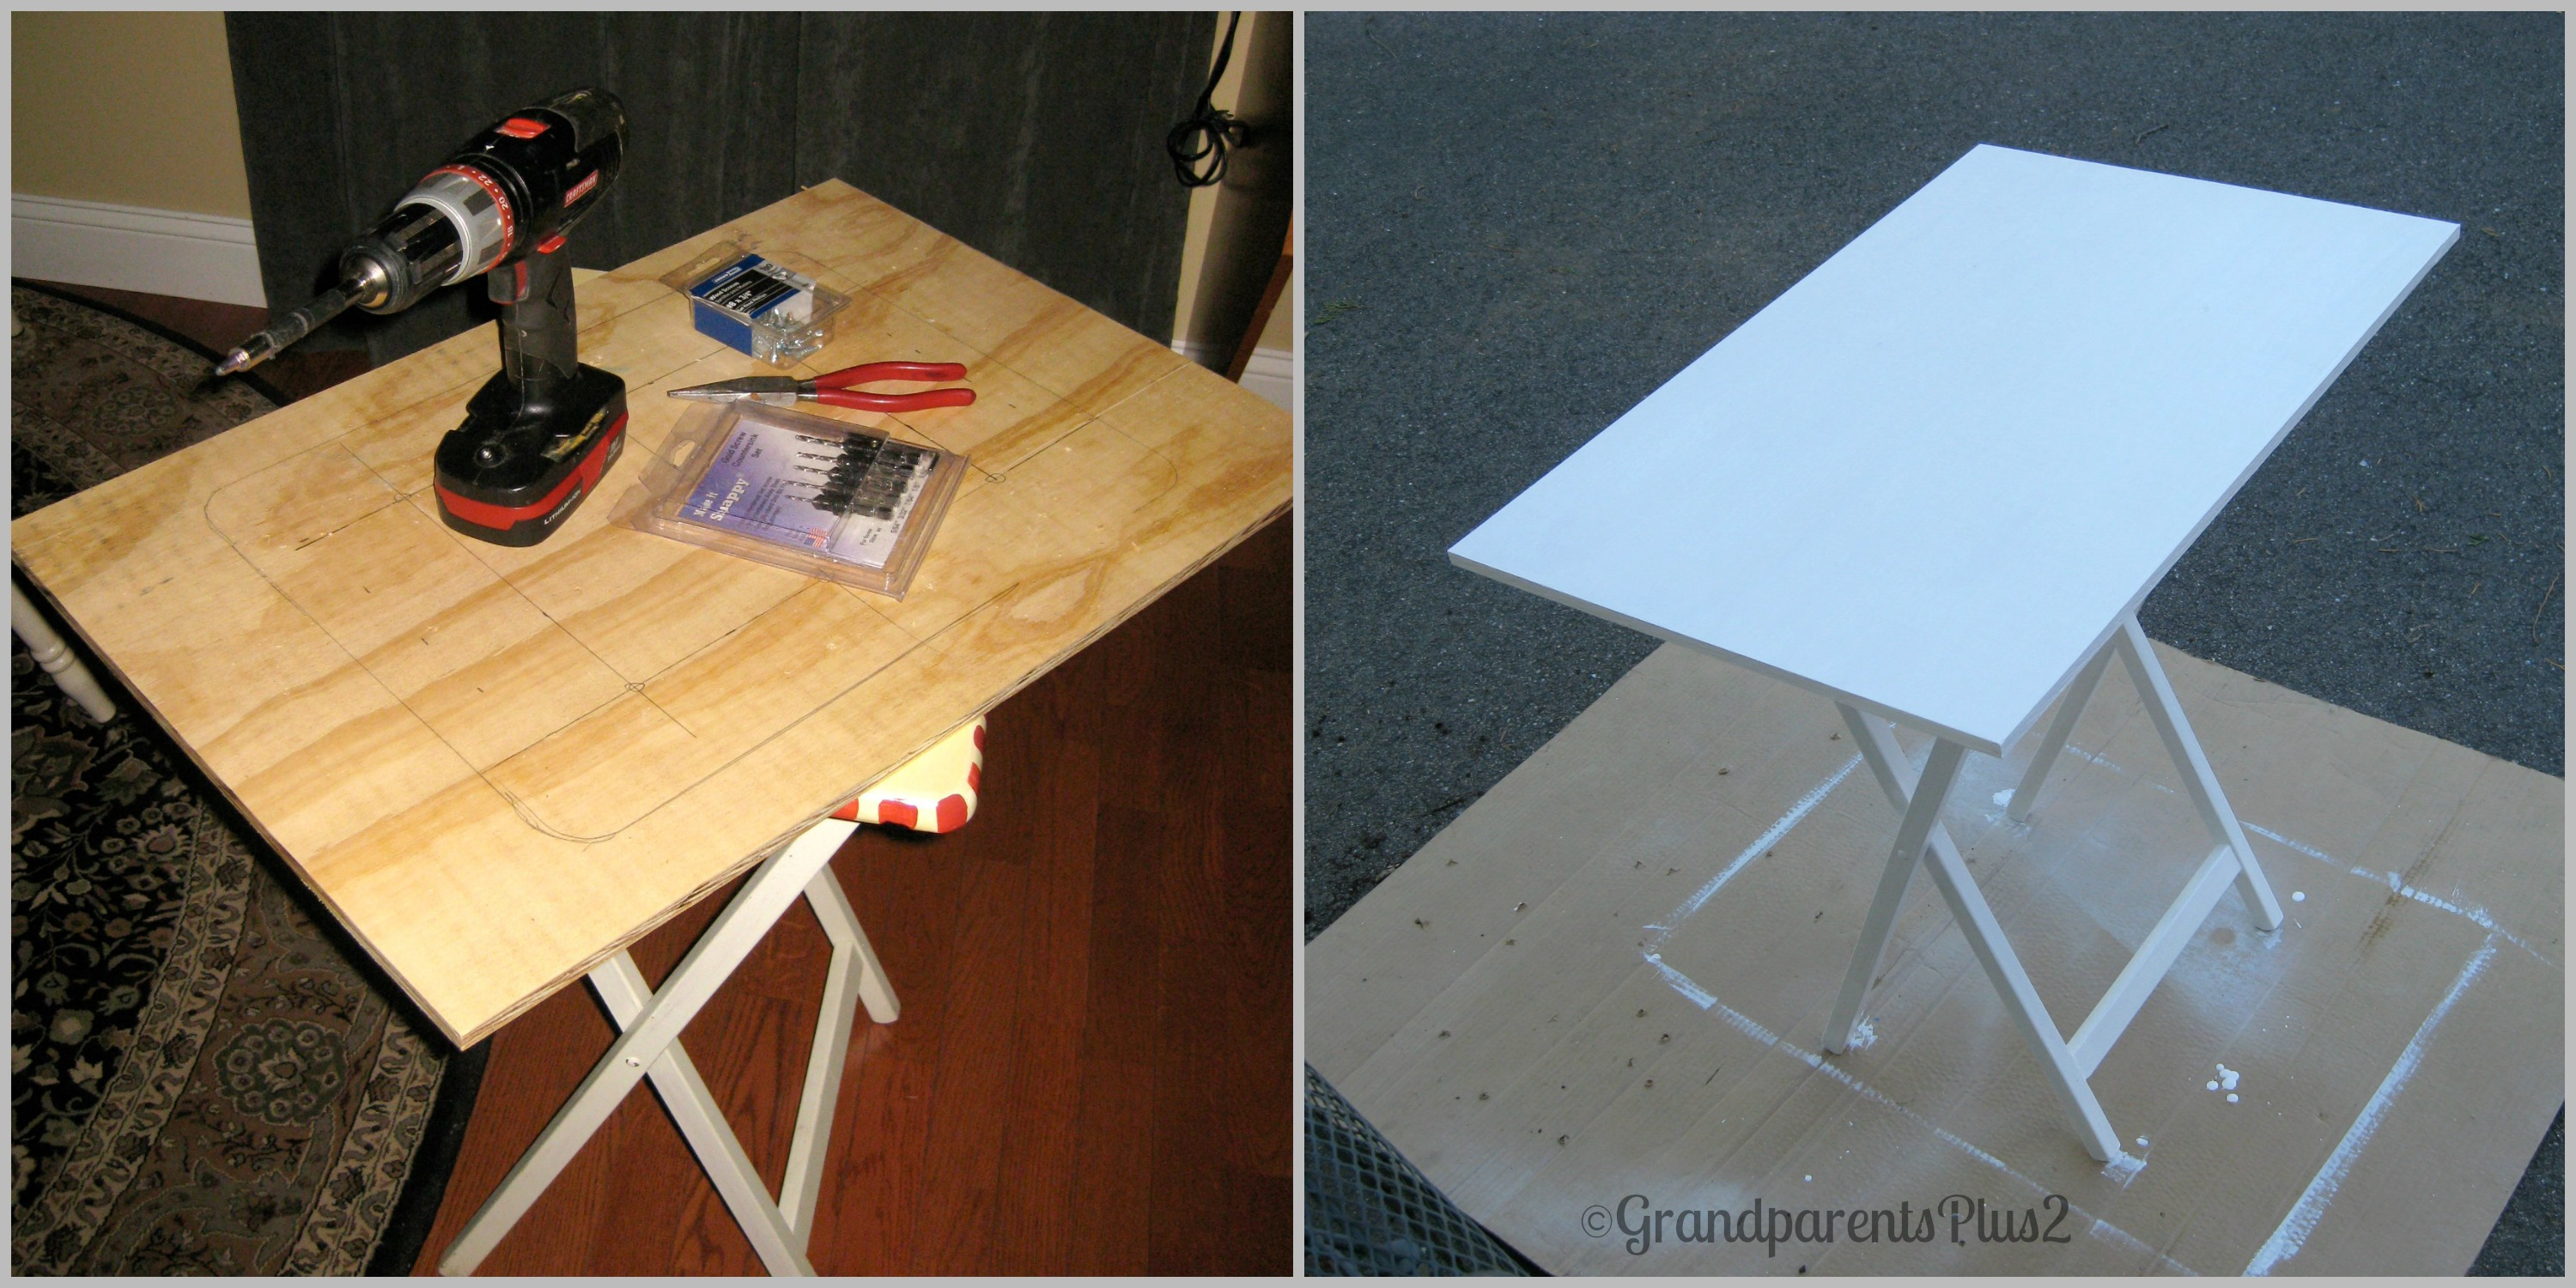 Fold up ironing board - It Now Makes A Nice Ironing Board And Embroidery Work Surface